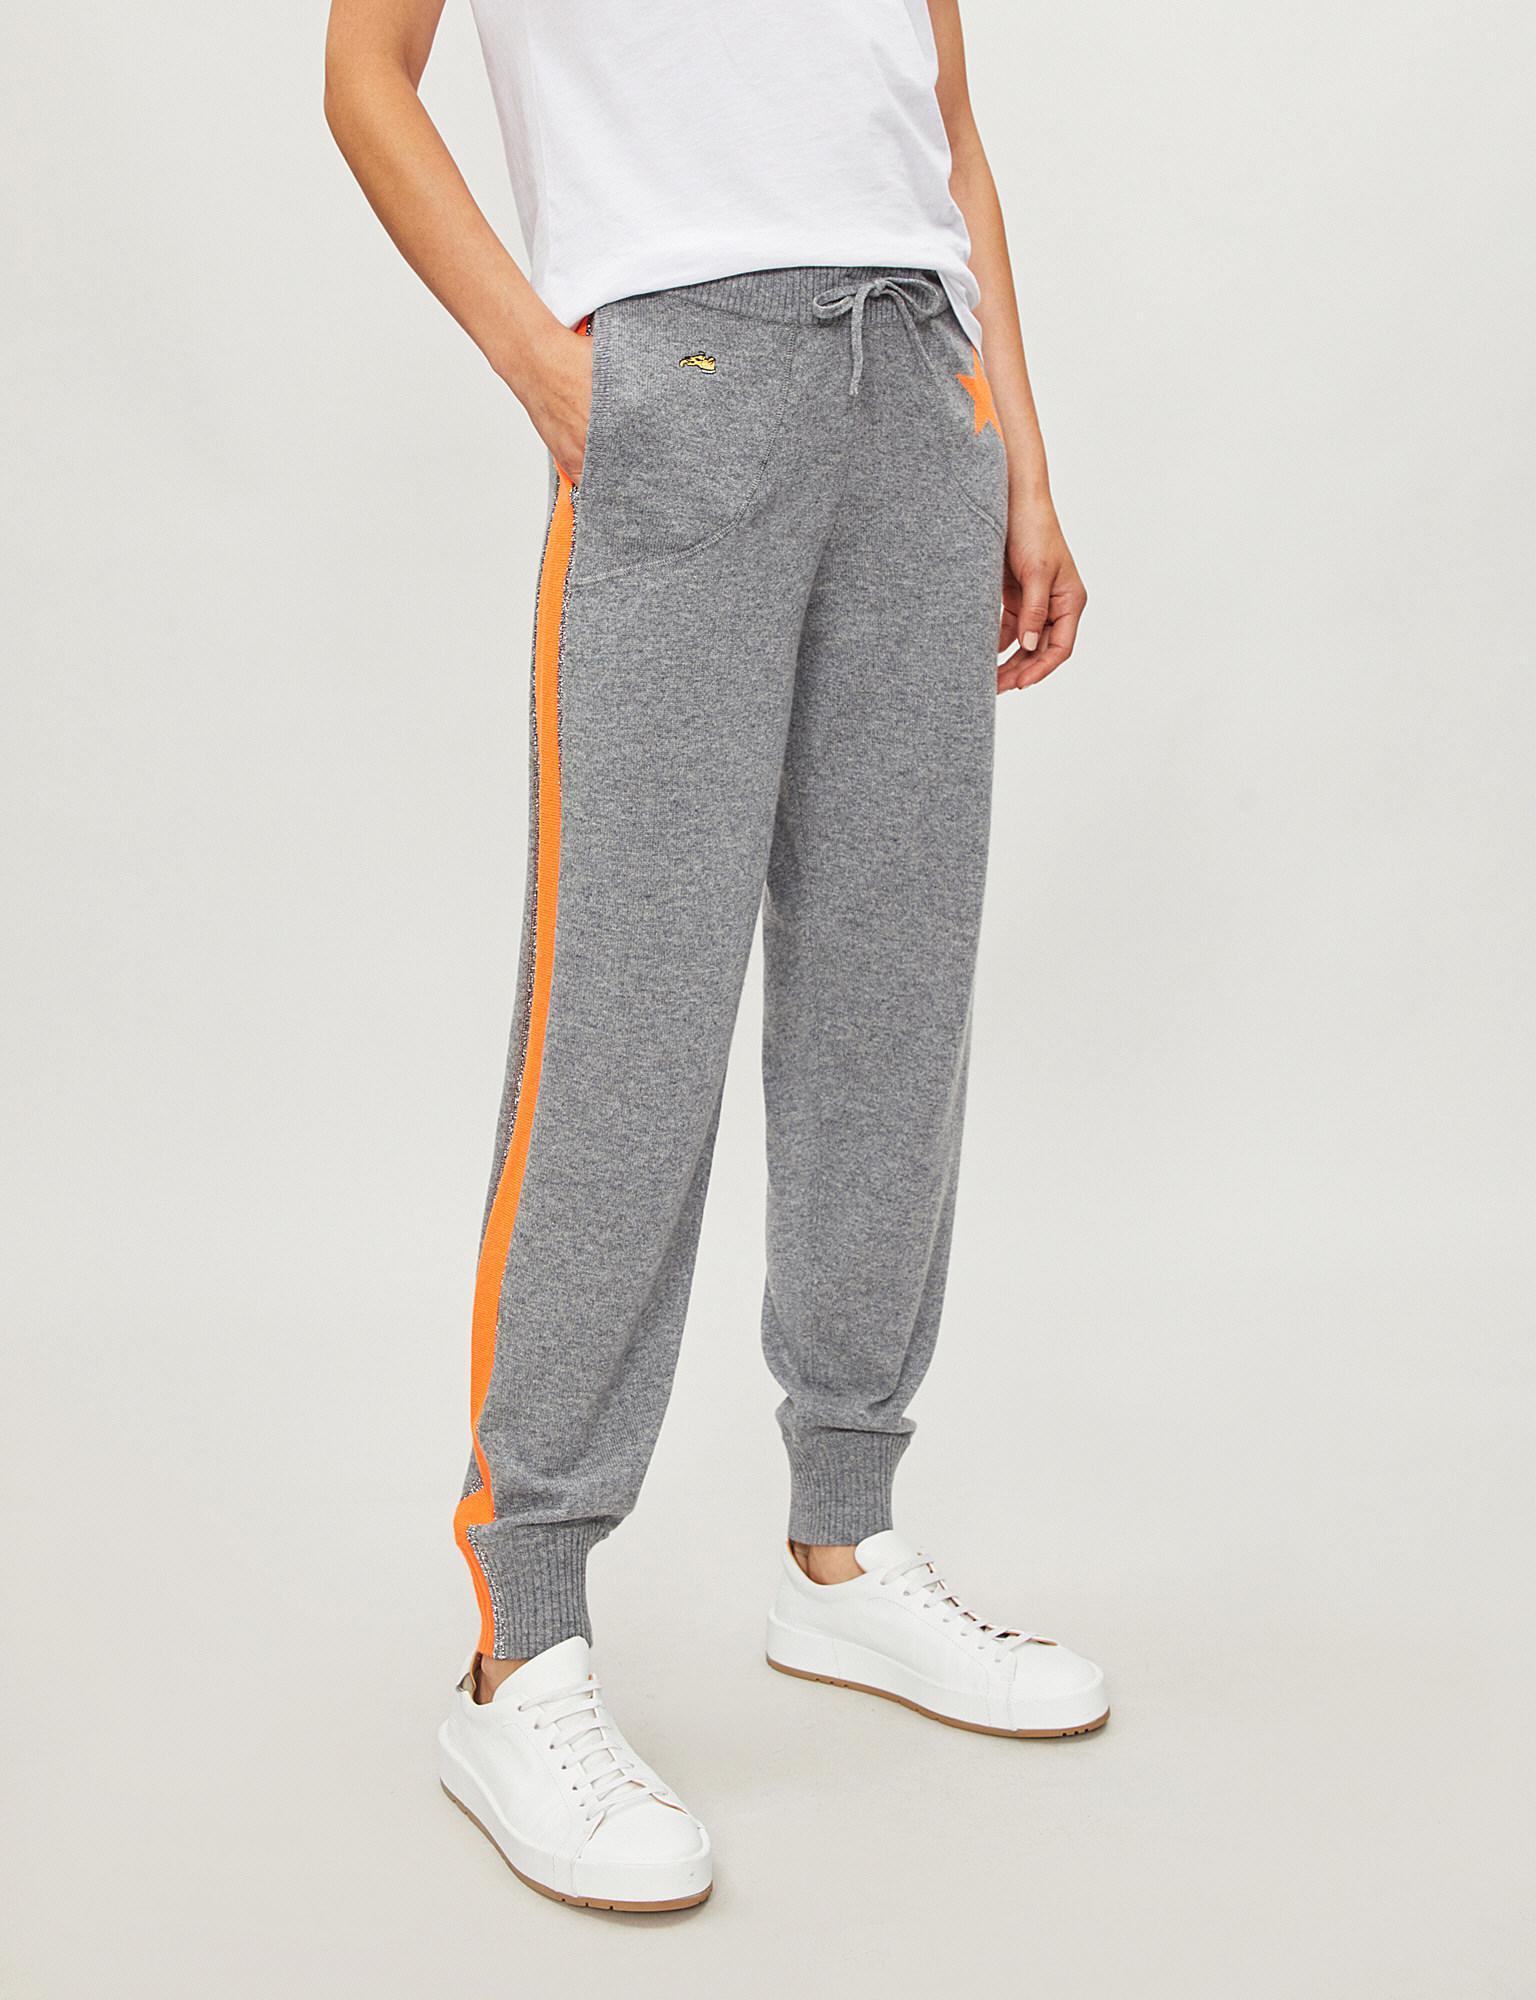 e56bff7a Lyst - Bella Freud Billie Cashmere jogging Bottoms in Gray